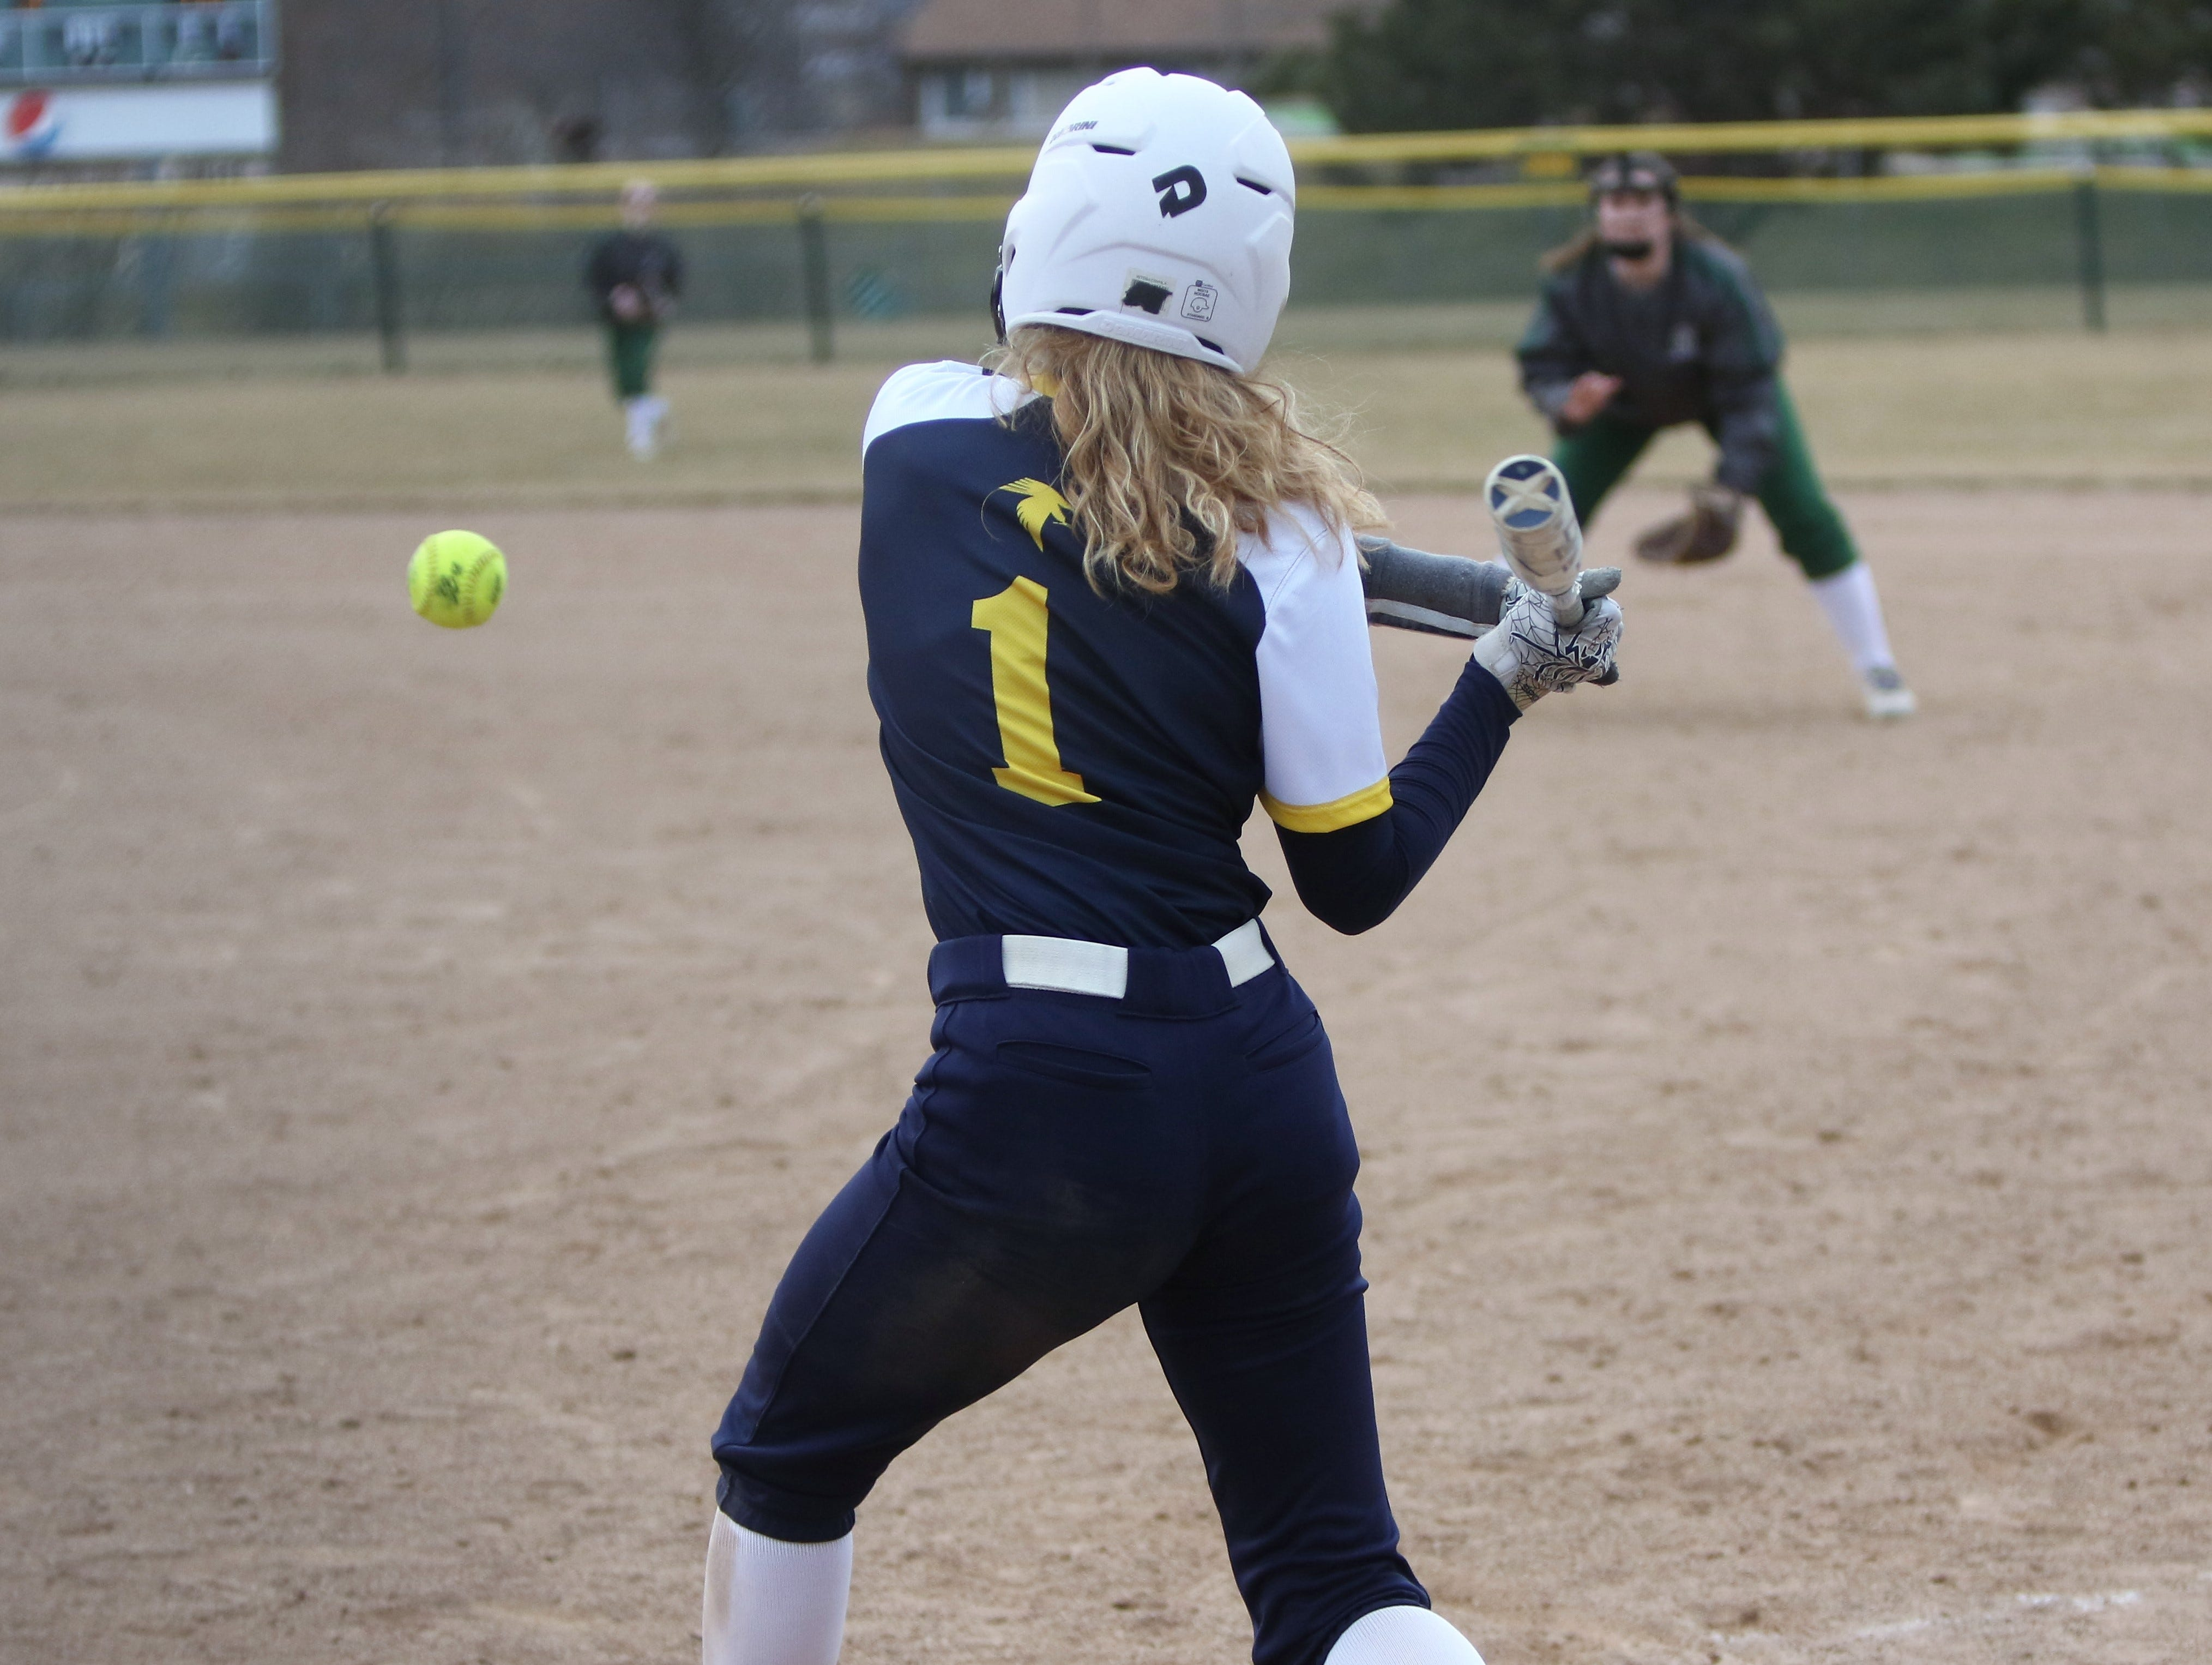 Whitnall junior Abby Cunningham swings en route to launching a home run against Greenfield on April 3, 2019.